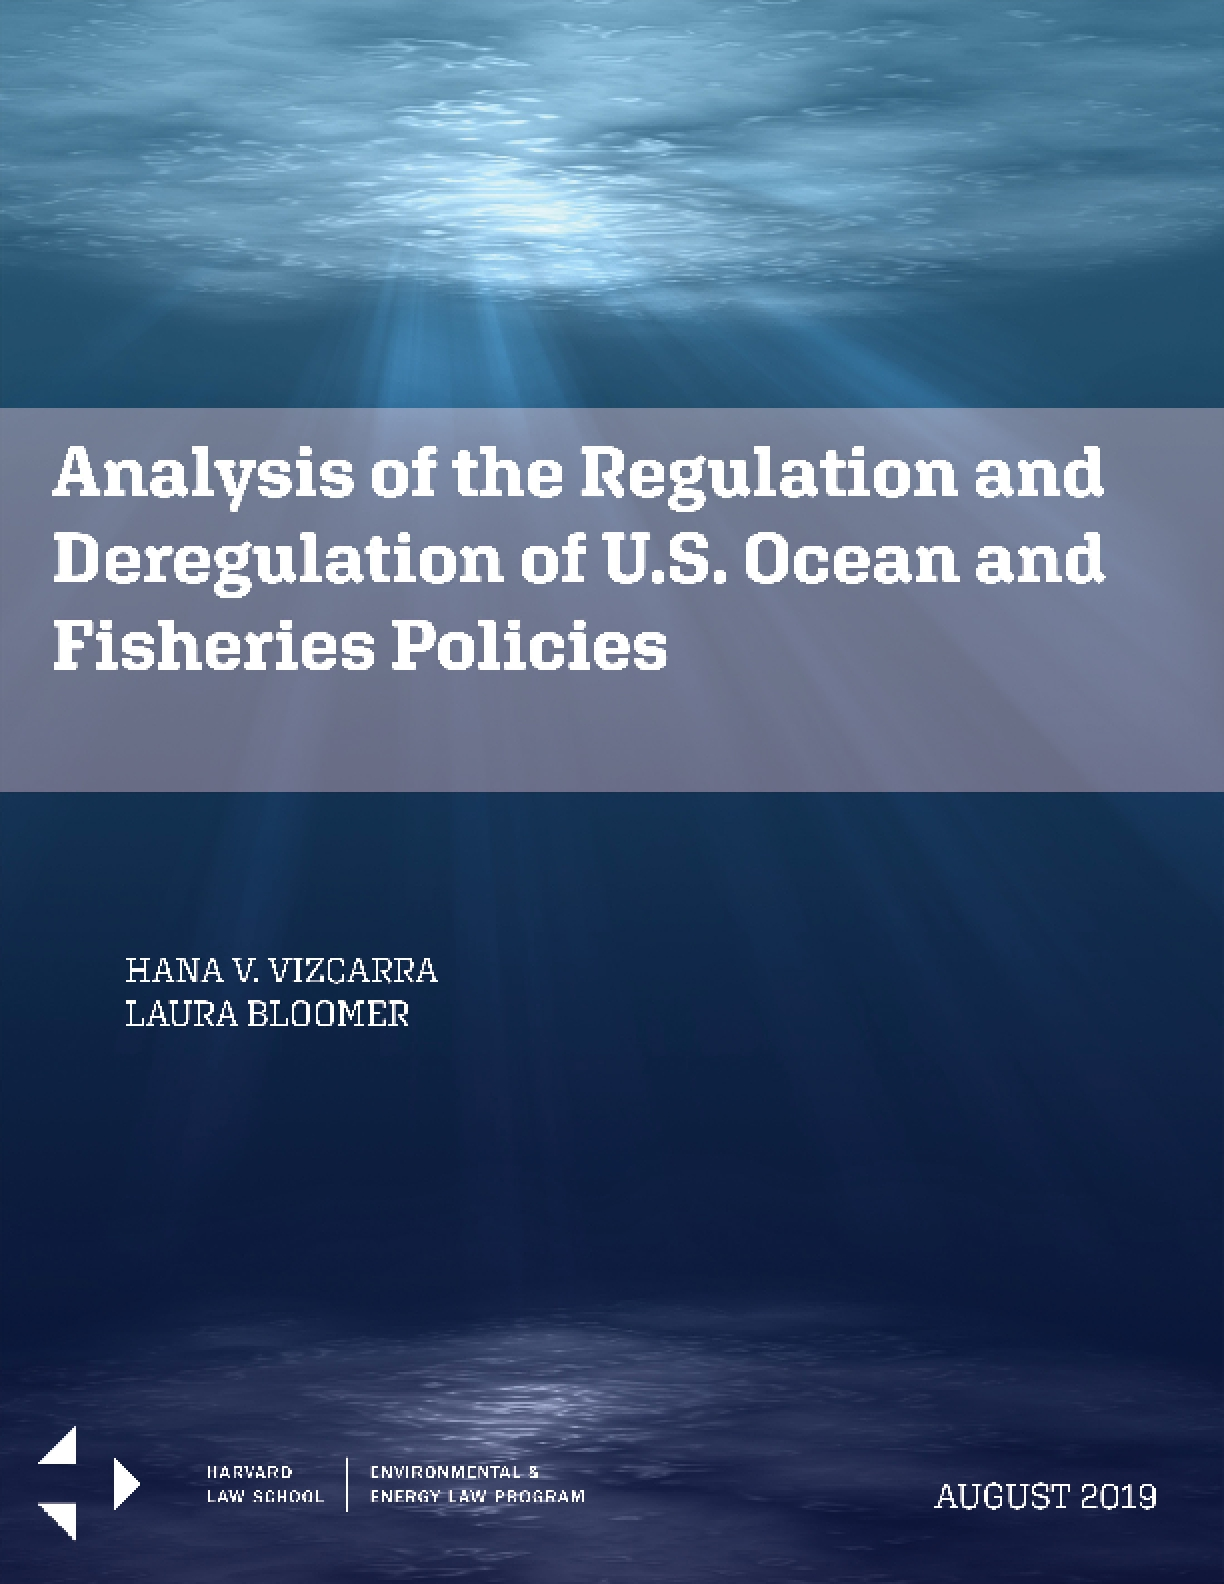 Analysis of the Regulation and Deregulation of U.S. Ocean and Fis